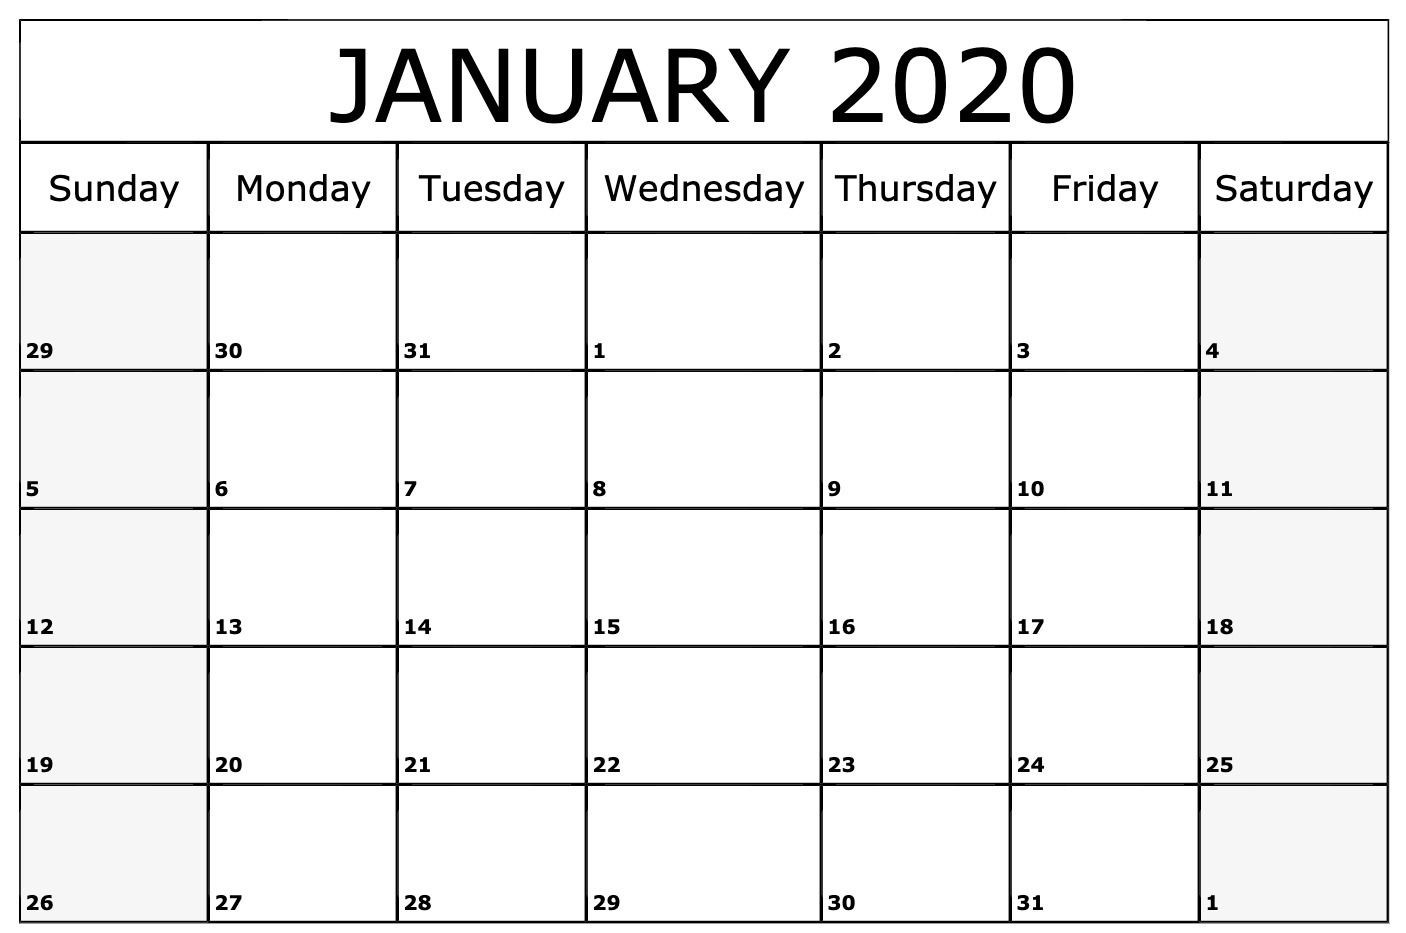 January 2020 Calendar Printable Template | Printable-Microsoft Word Calendar Templates 2020 Free